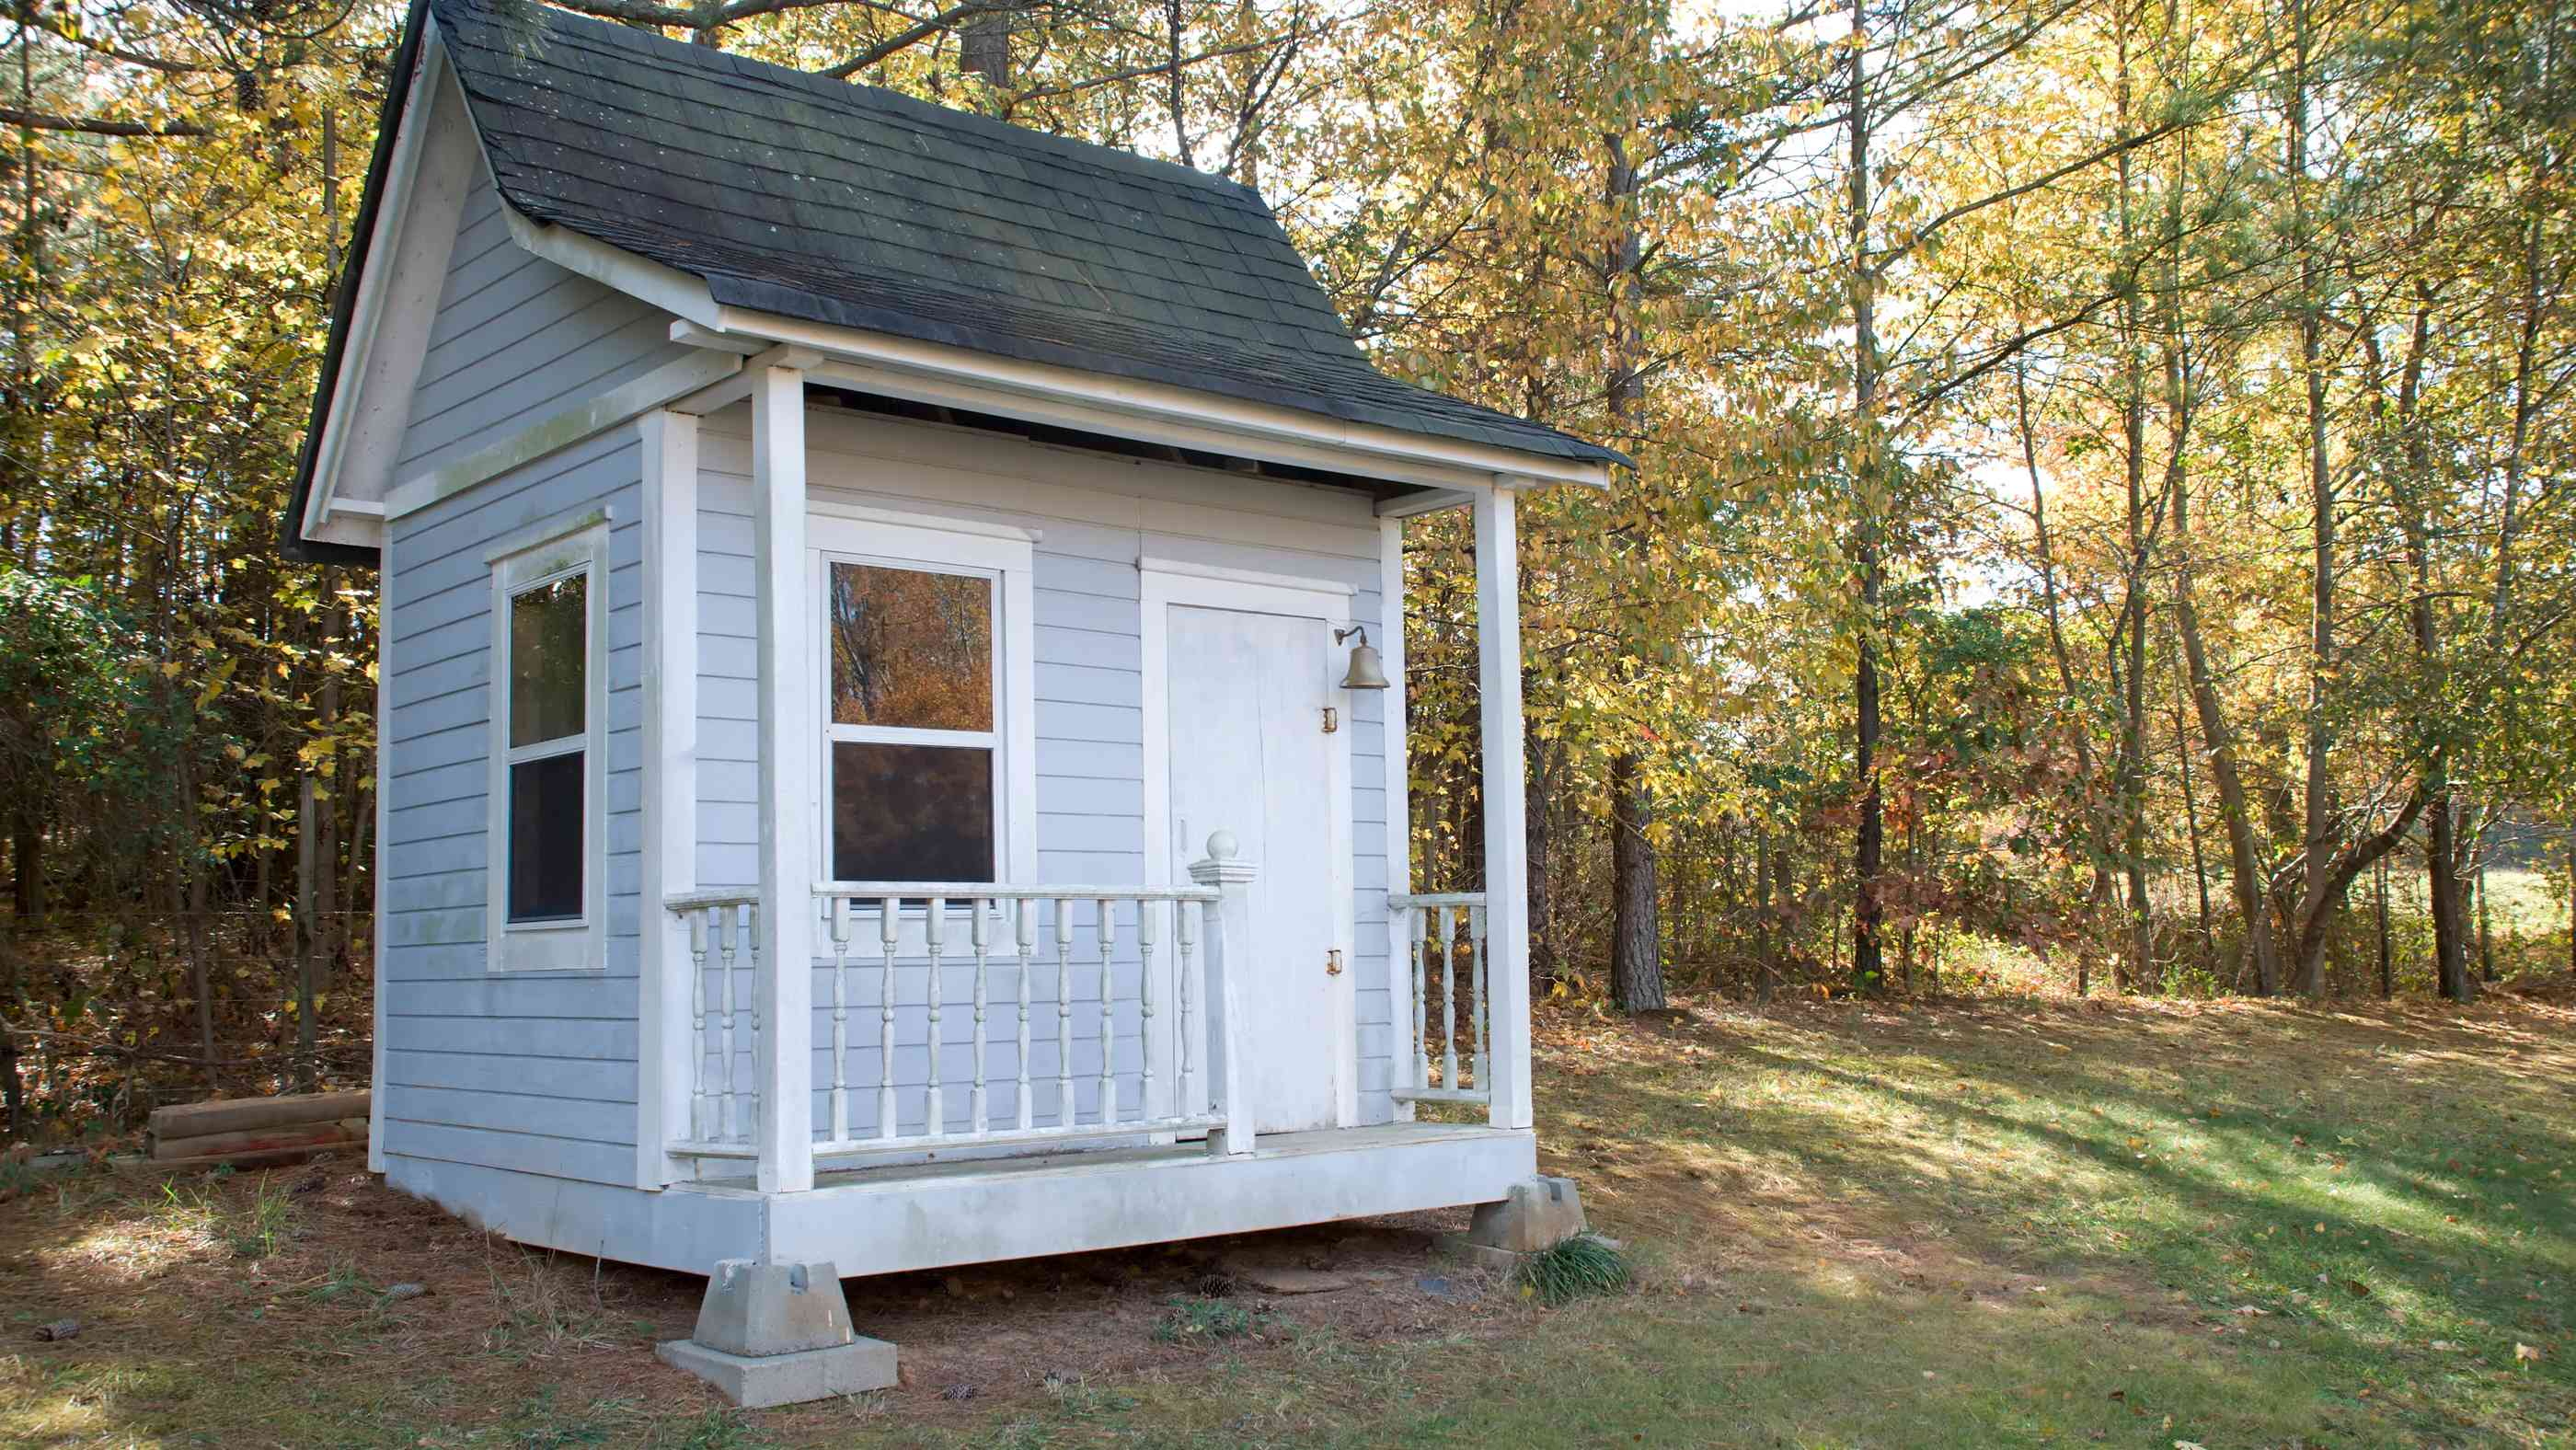 Tiny Houses: Ratgeber, Tipps & alle Infos rund ums Minihaus